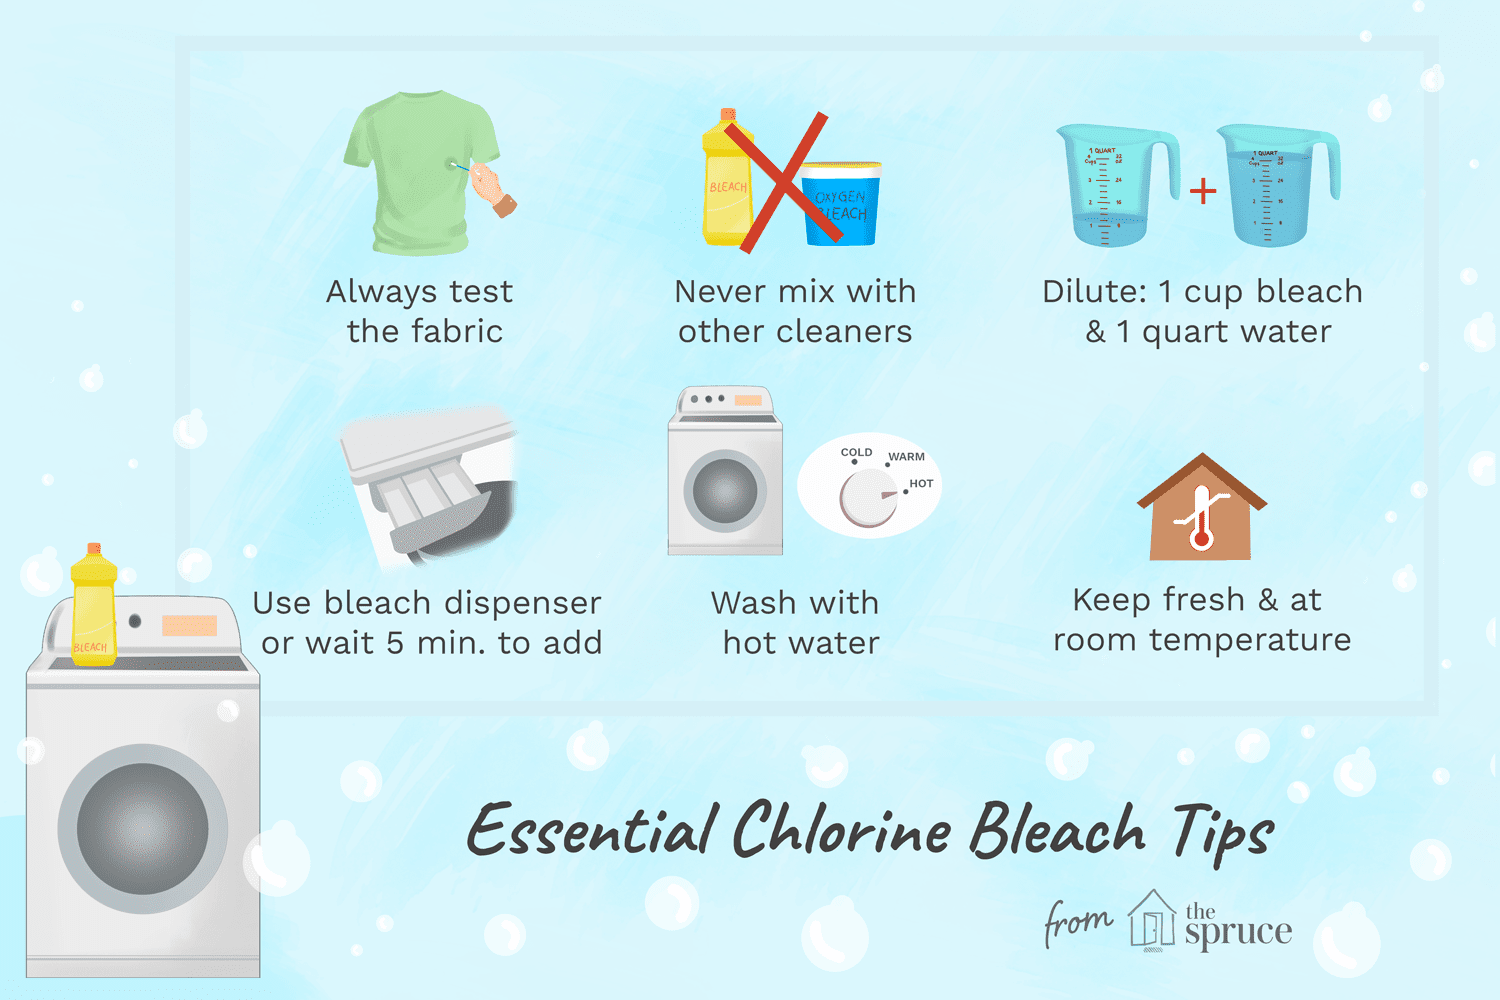 6 Chlorine Bleach Tips for Better Laundry Results